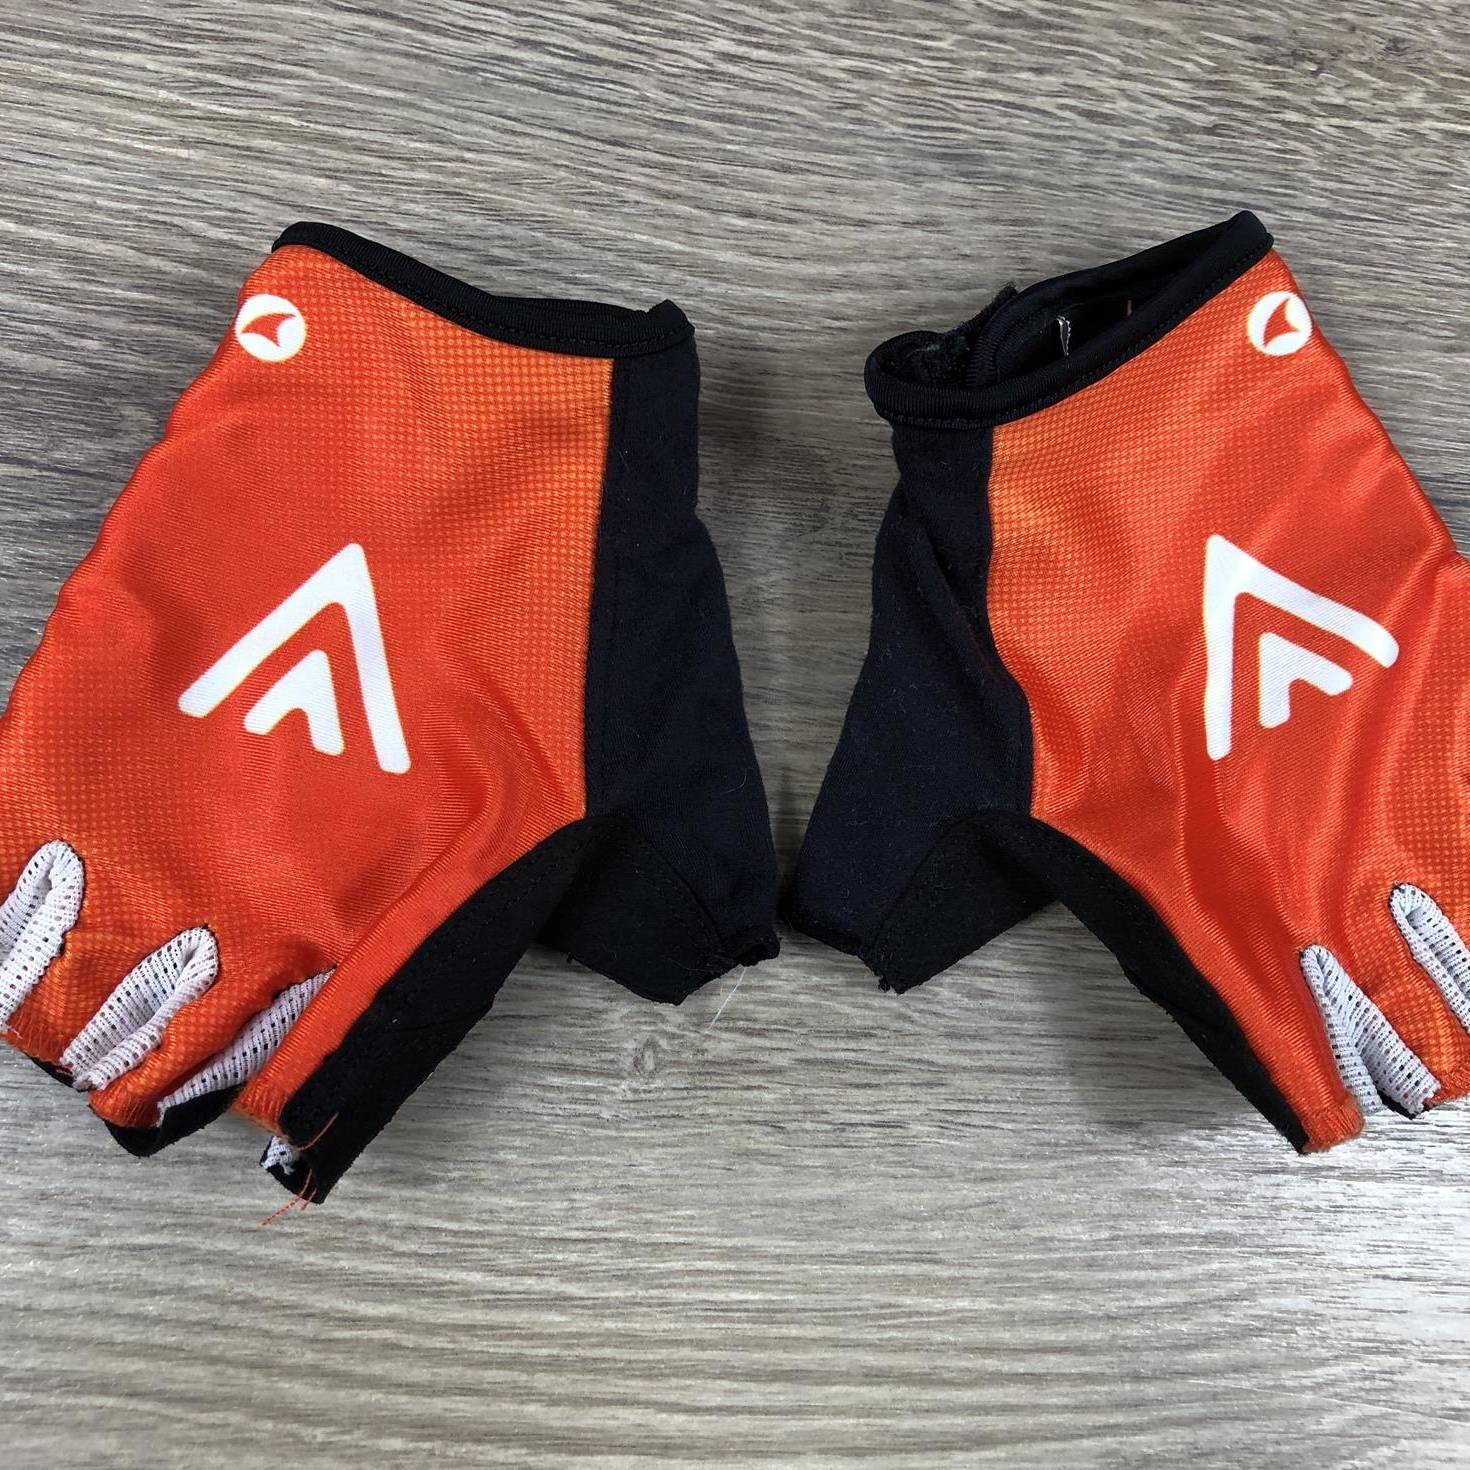 Pro Team Ascent Gloves - Rally Cycling 00003281 (1)